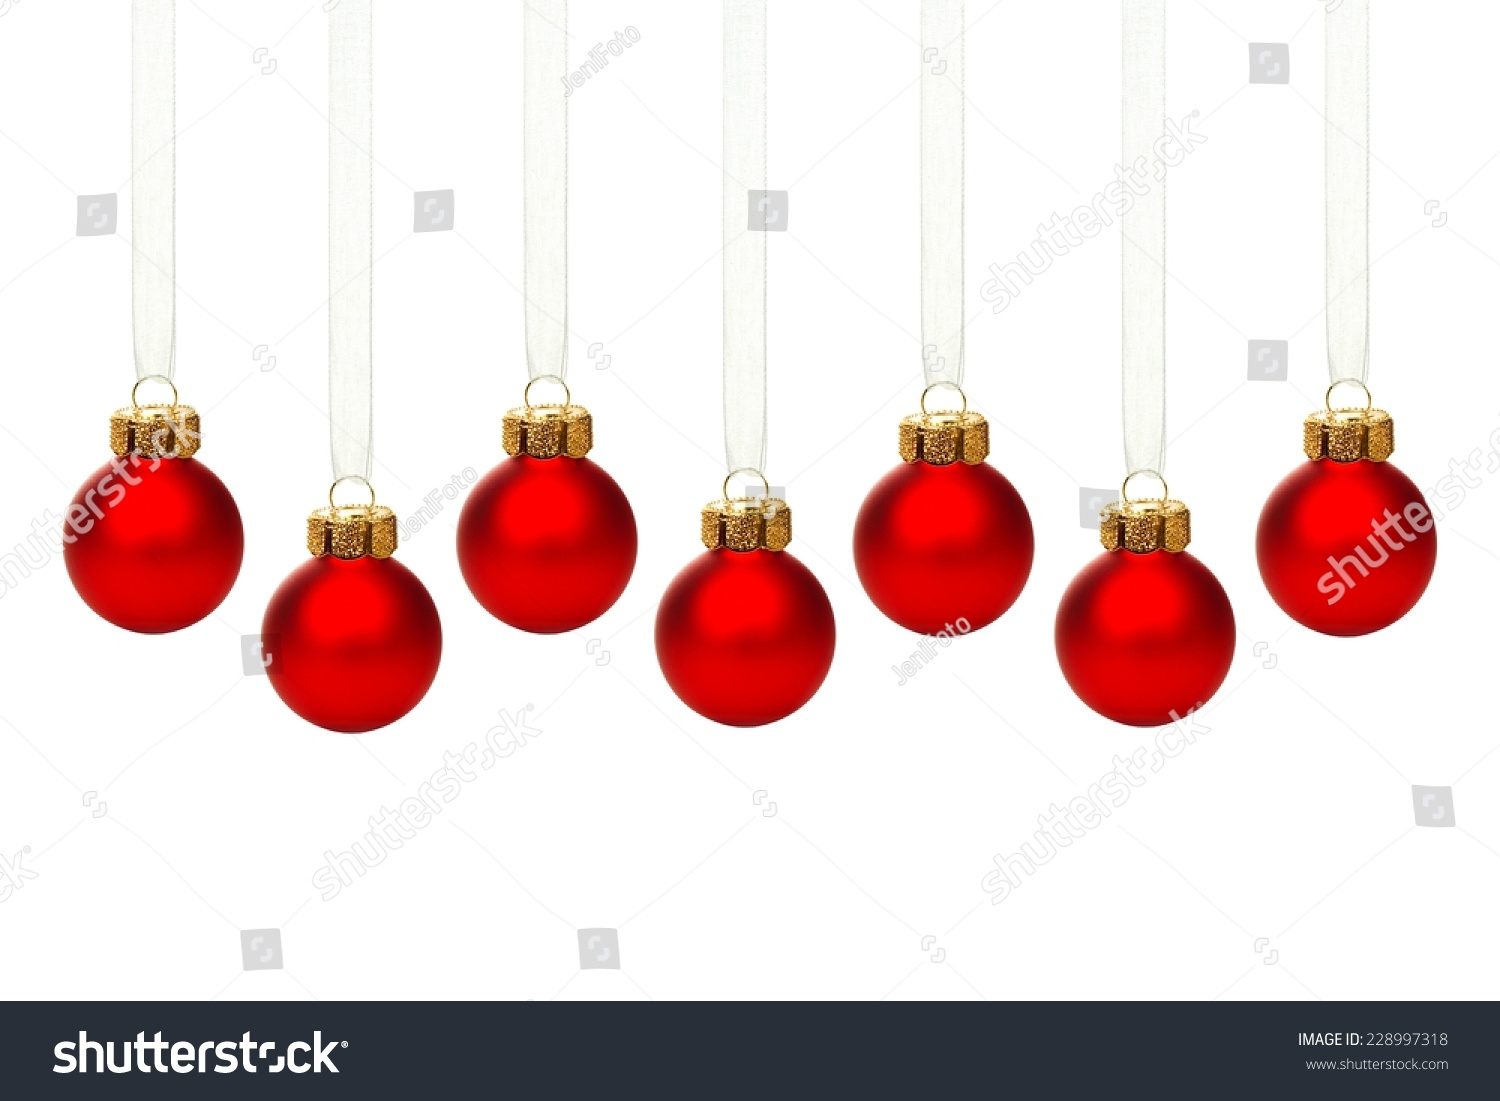 Hanging Red Christmas Ornament Border Ribbon Stock Photo (Edit Now ...